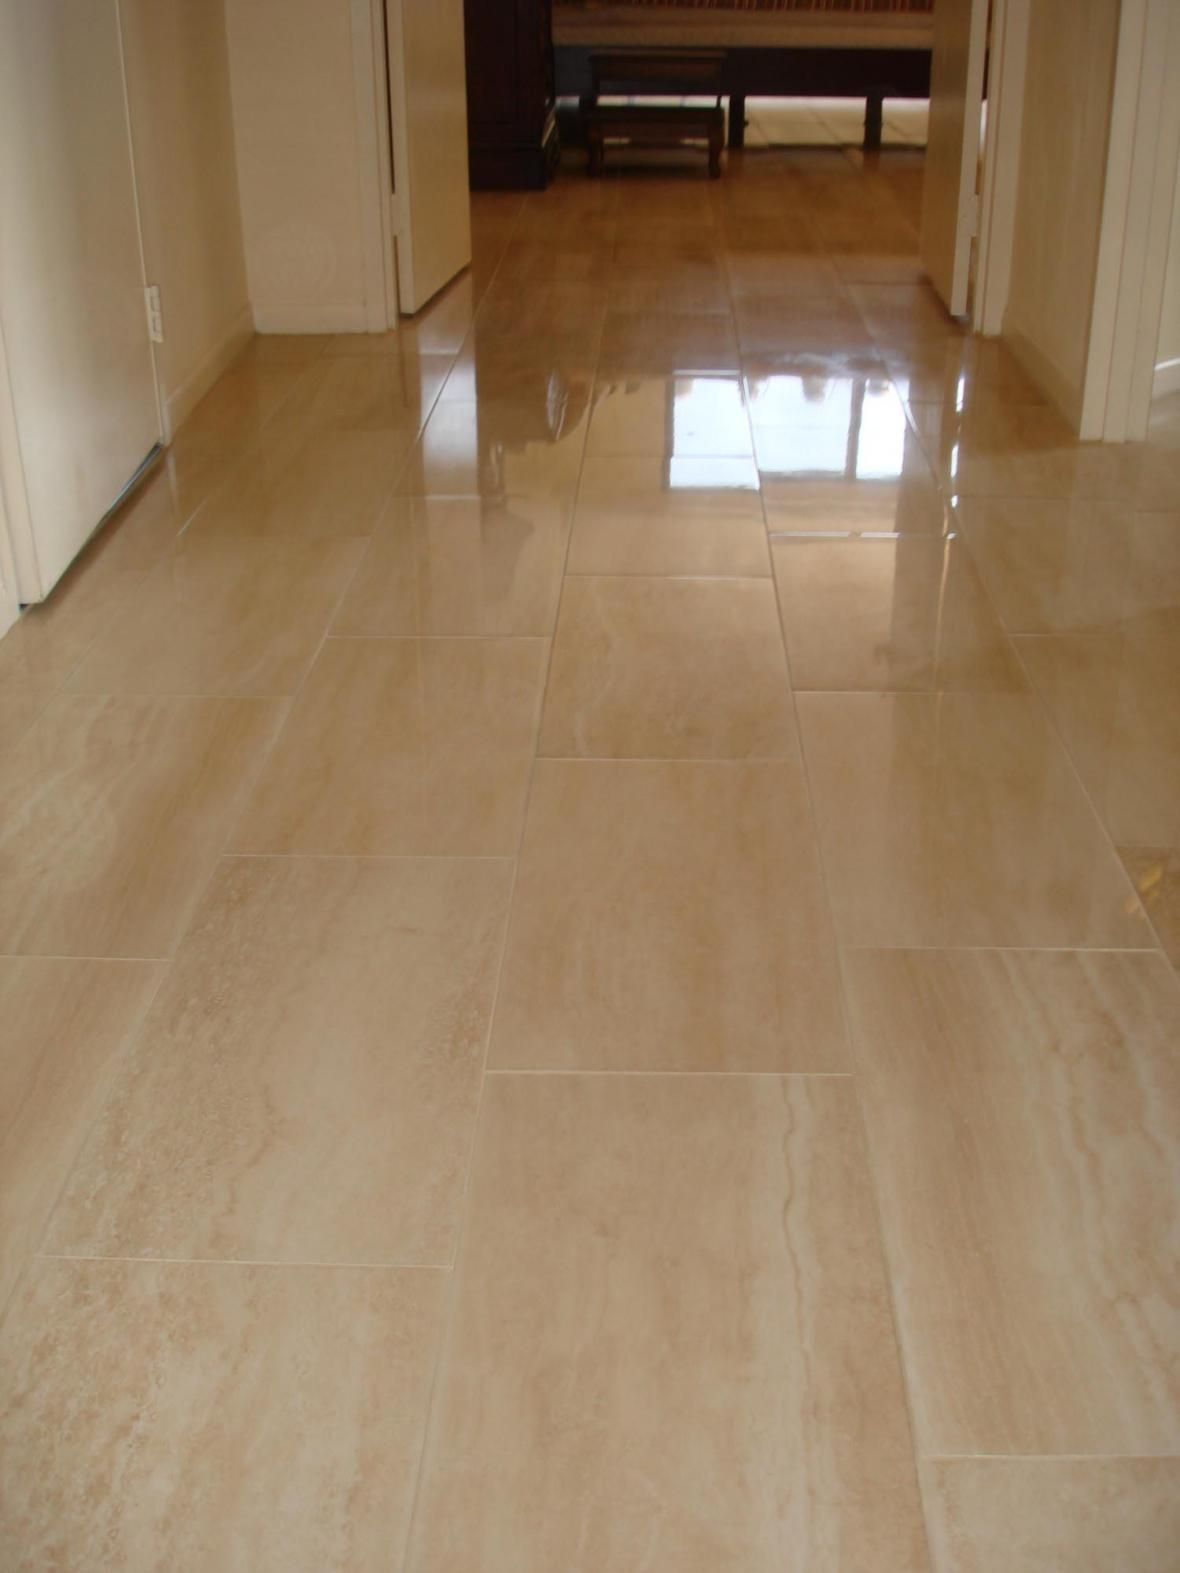 Porcelain flooring porcelain tile floor in hallway house porcelain flooring porcelain tile floor in hallway dailygadgetfo Choice Image